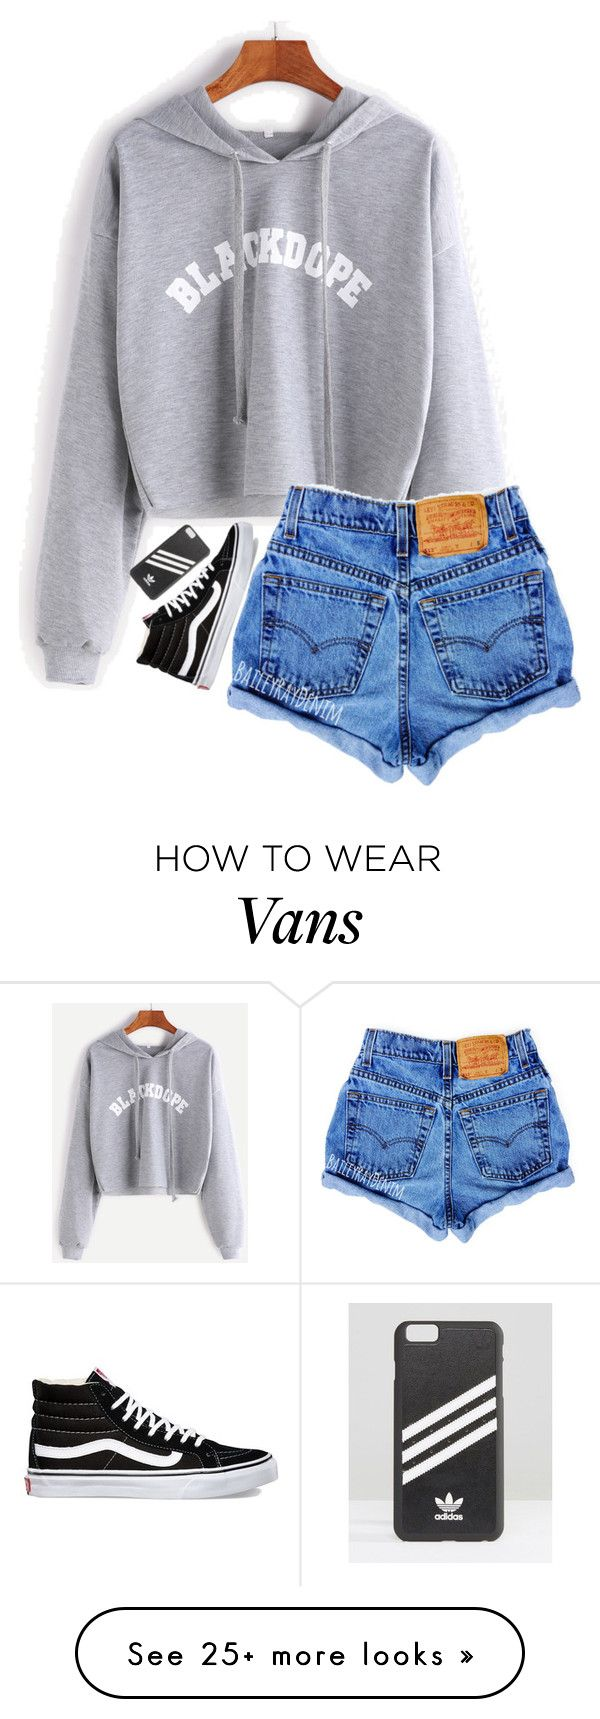 """""""Just a low  outfit"""" by cait926 on Polyvore featuring Vans and adidas"""